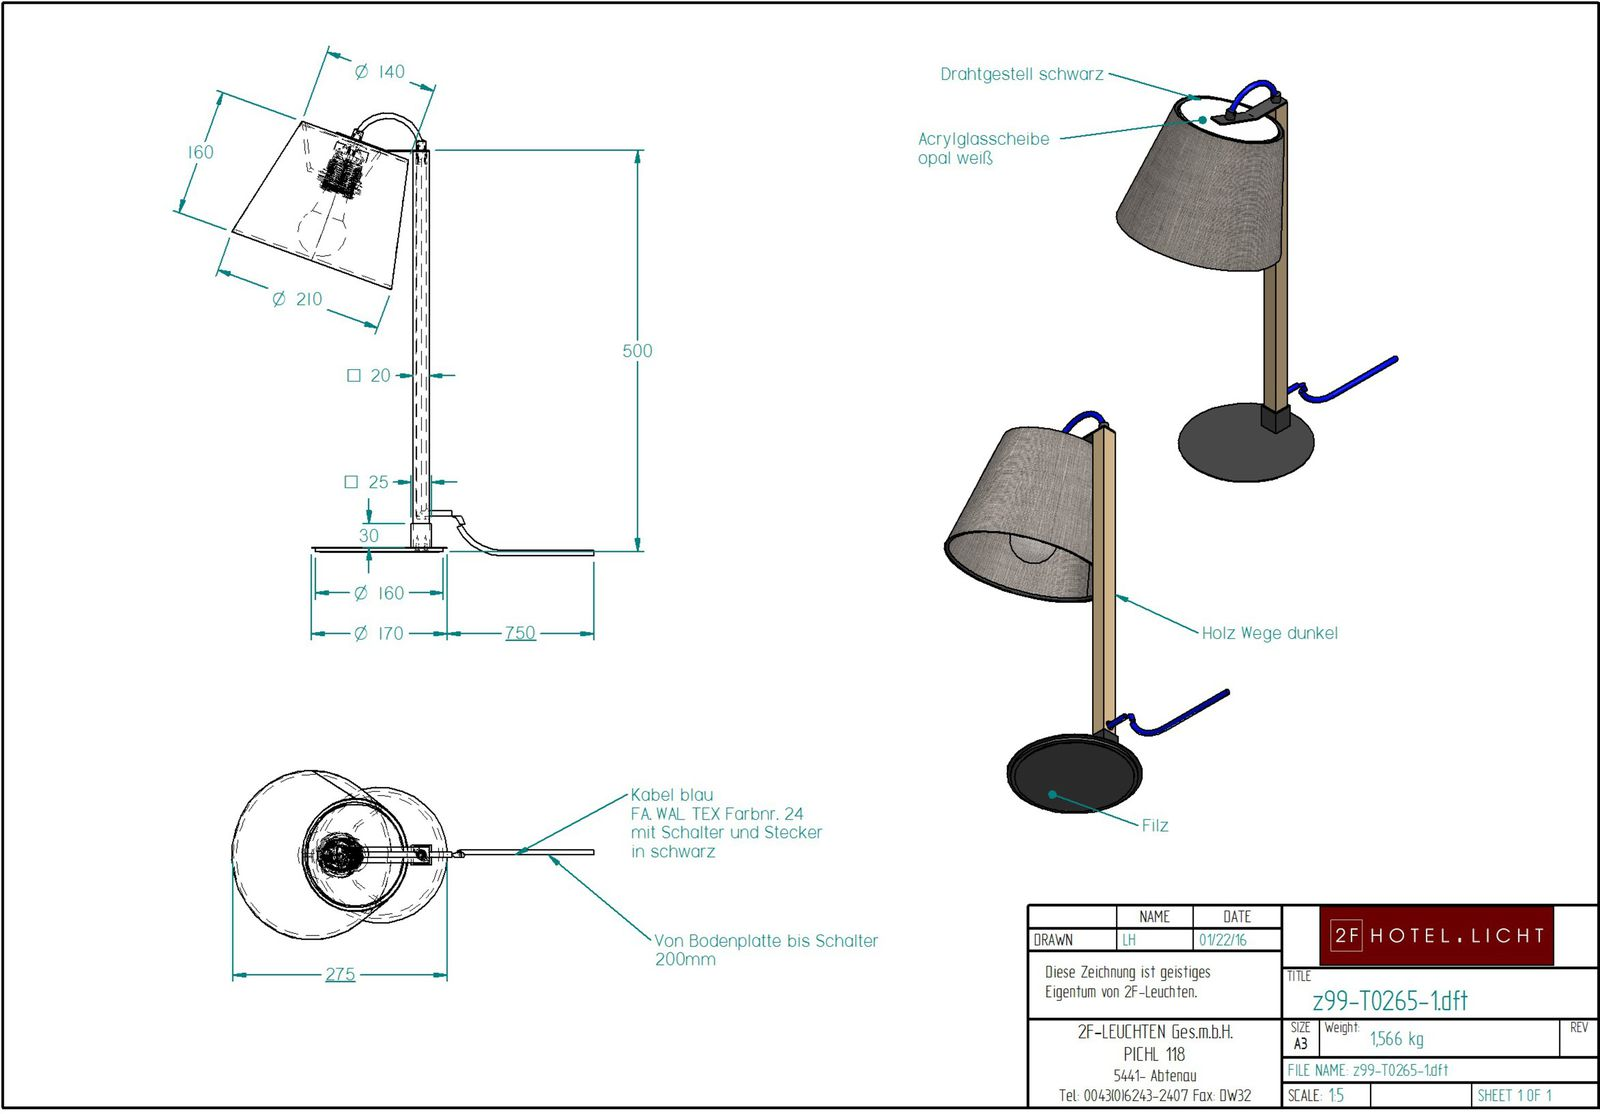 table lamp, dimensions: Ø 160mm, W:275mm, H:500mm, surface: metall SWM black, techn. Data: 1xE27, LED 10W, 827, 470lm, 2700K,